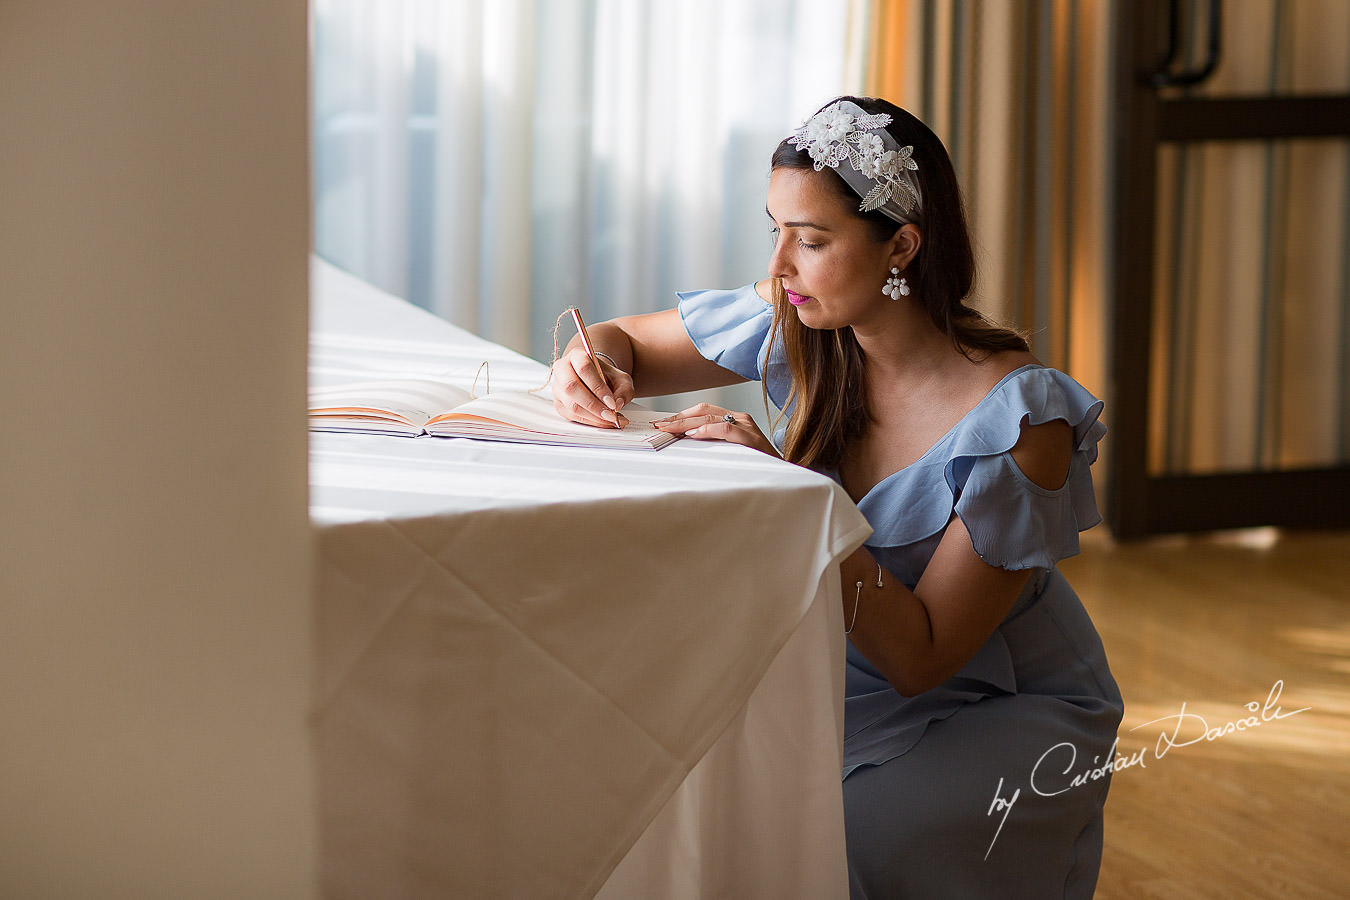 Guests writing wishes int he guest book, moments photographed by Cristian Dascalu at Athena Beach Hotel in Paphos, Cyprus, during a symbolic wedding.